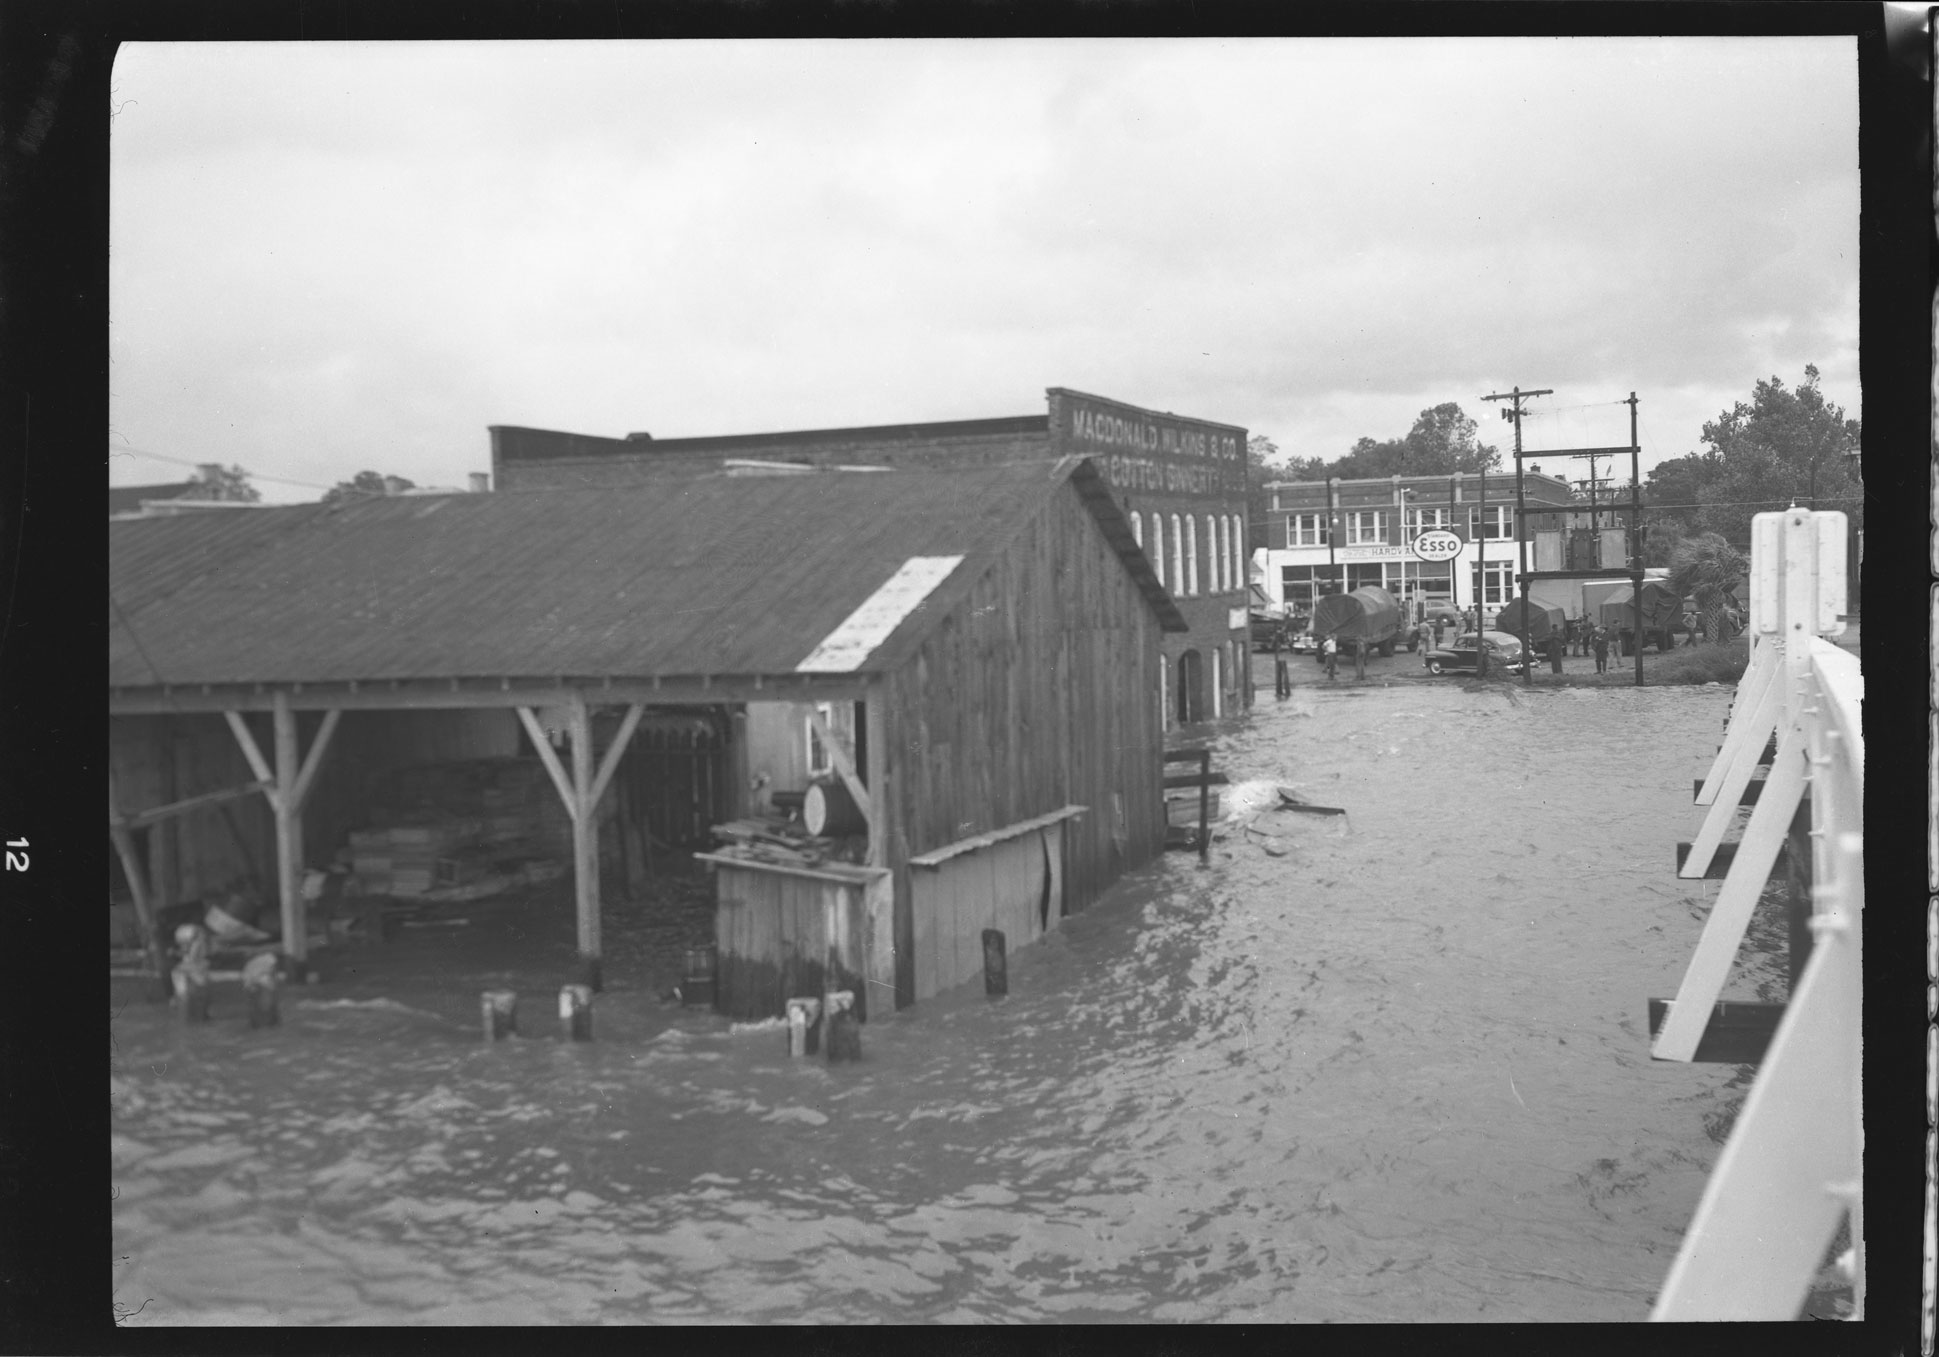 Flooding at Macdonalds, Wilkins & Co. Cotton Ginnery